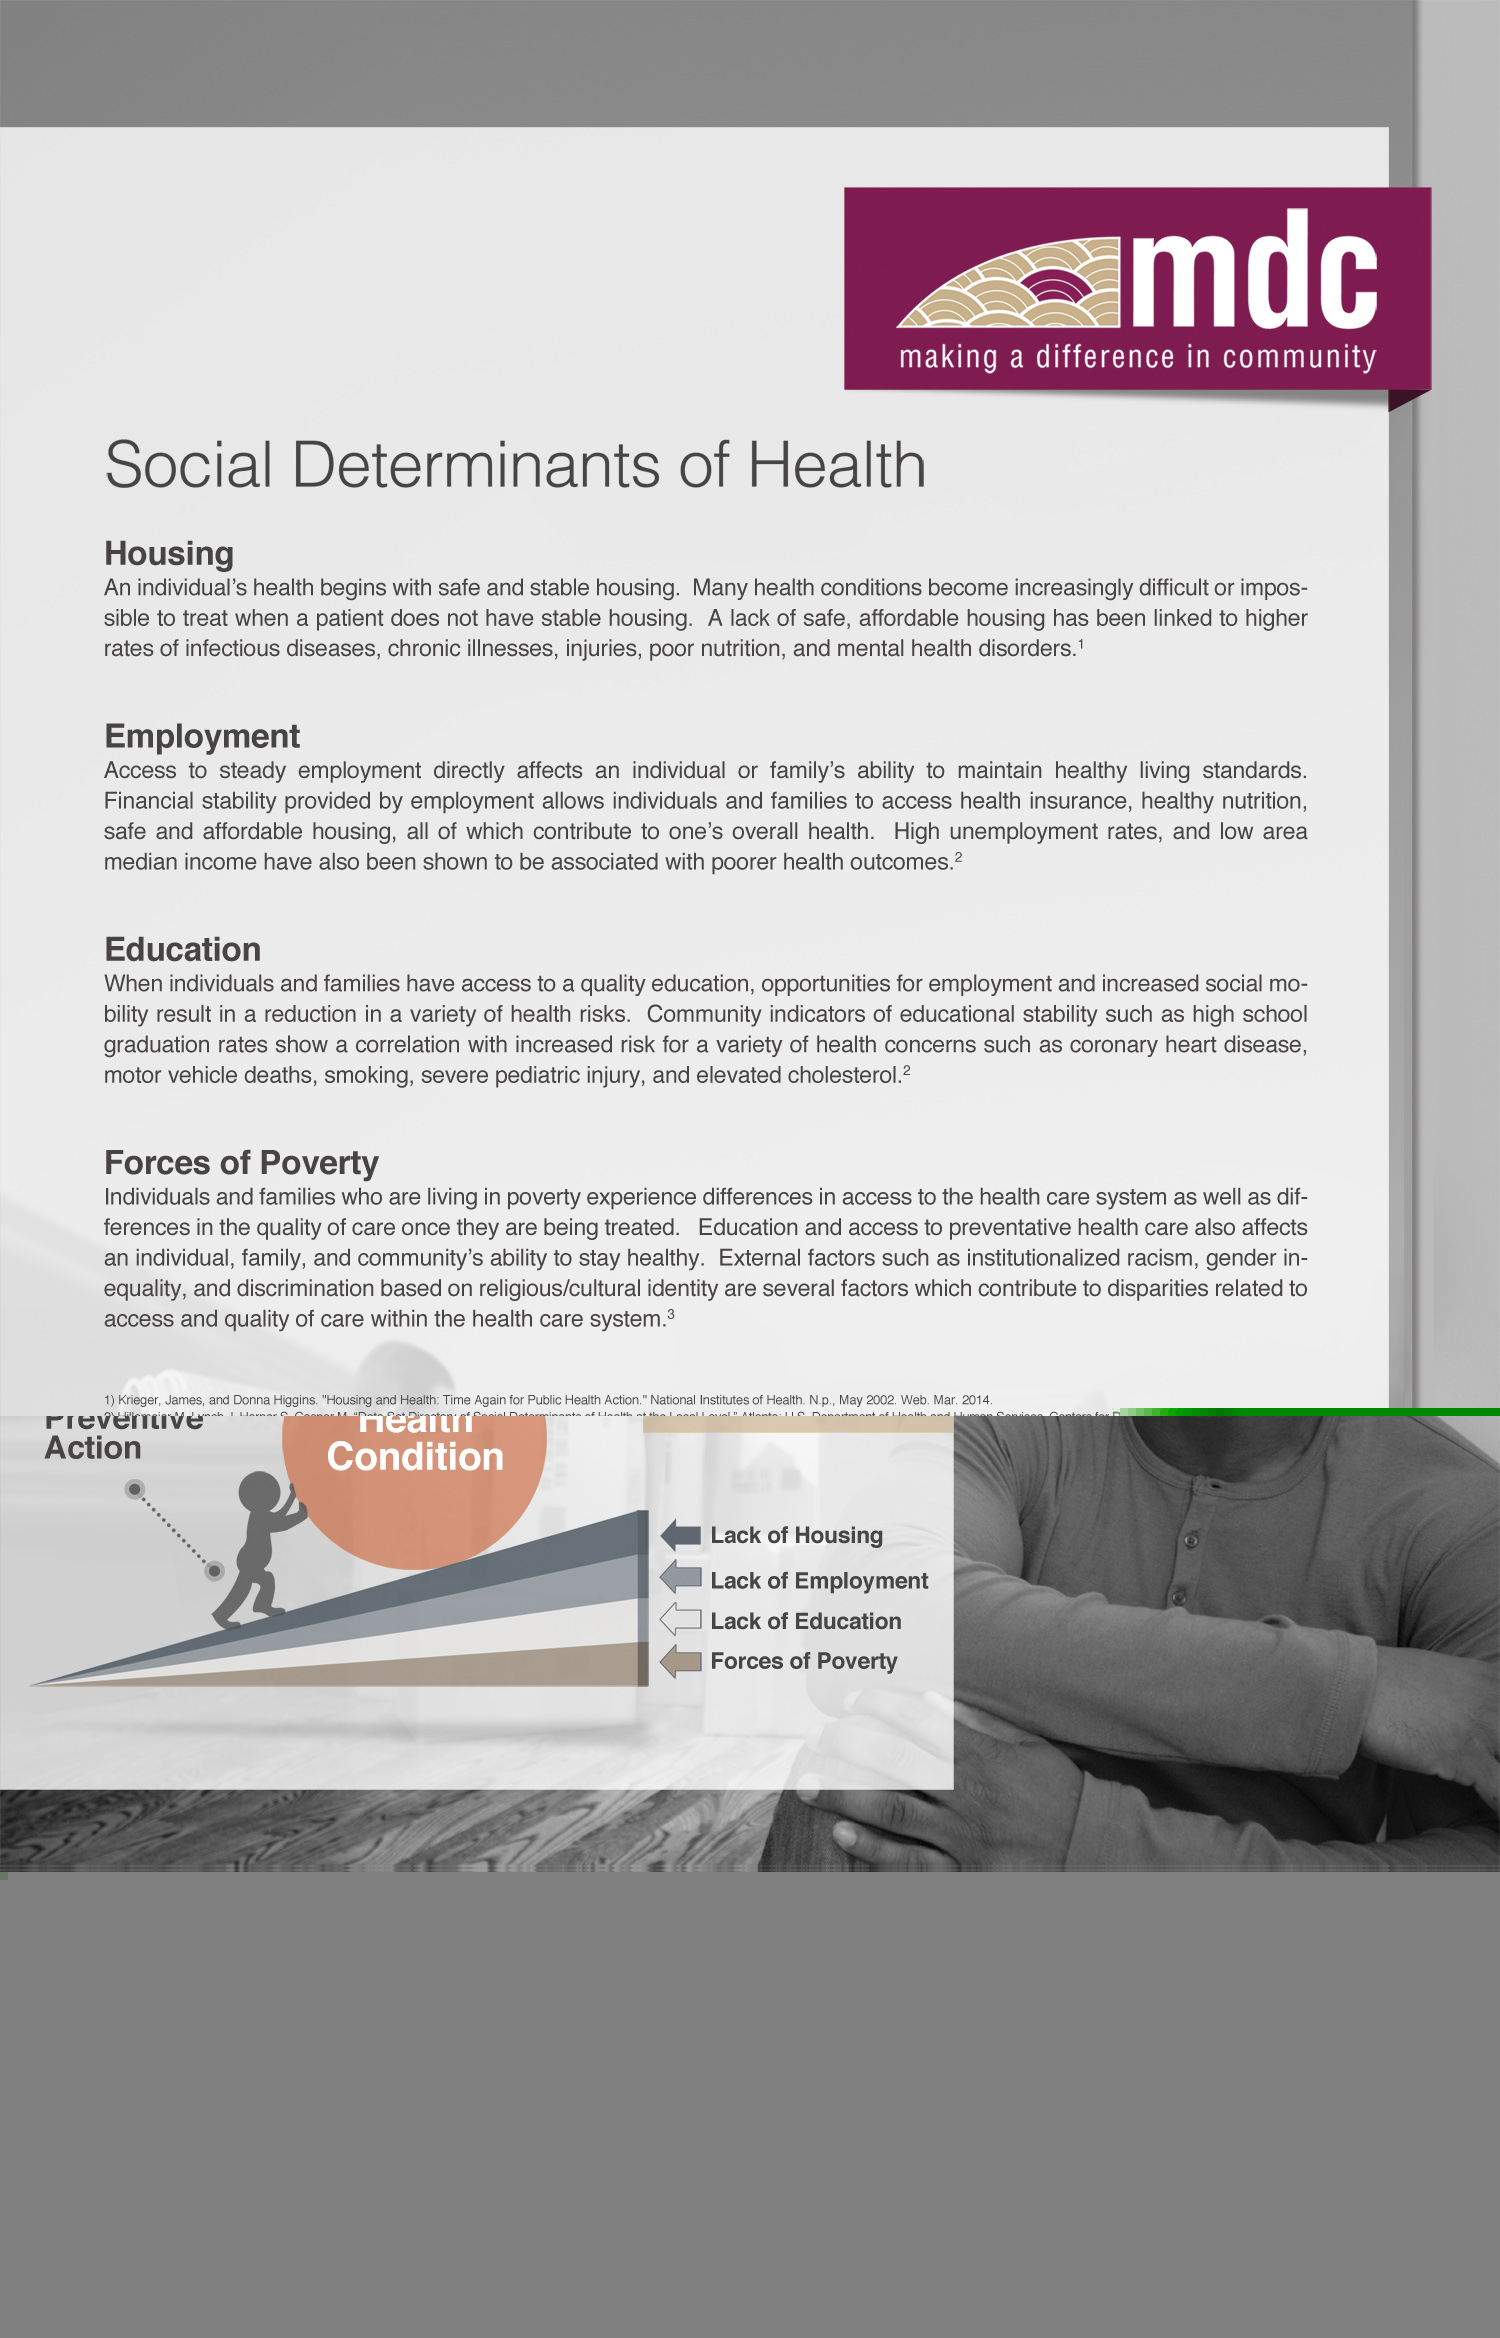 Social Determinants of Health web